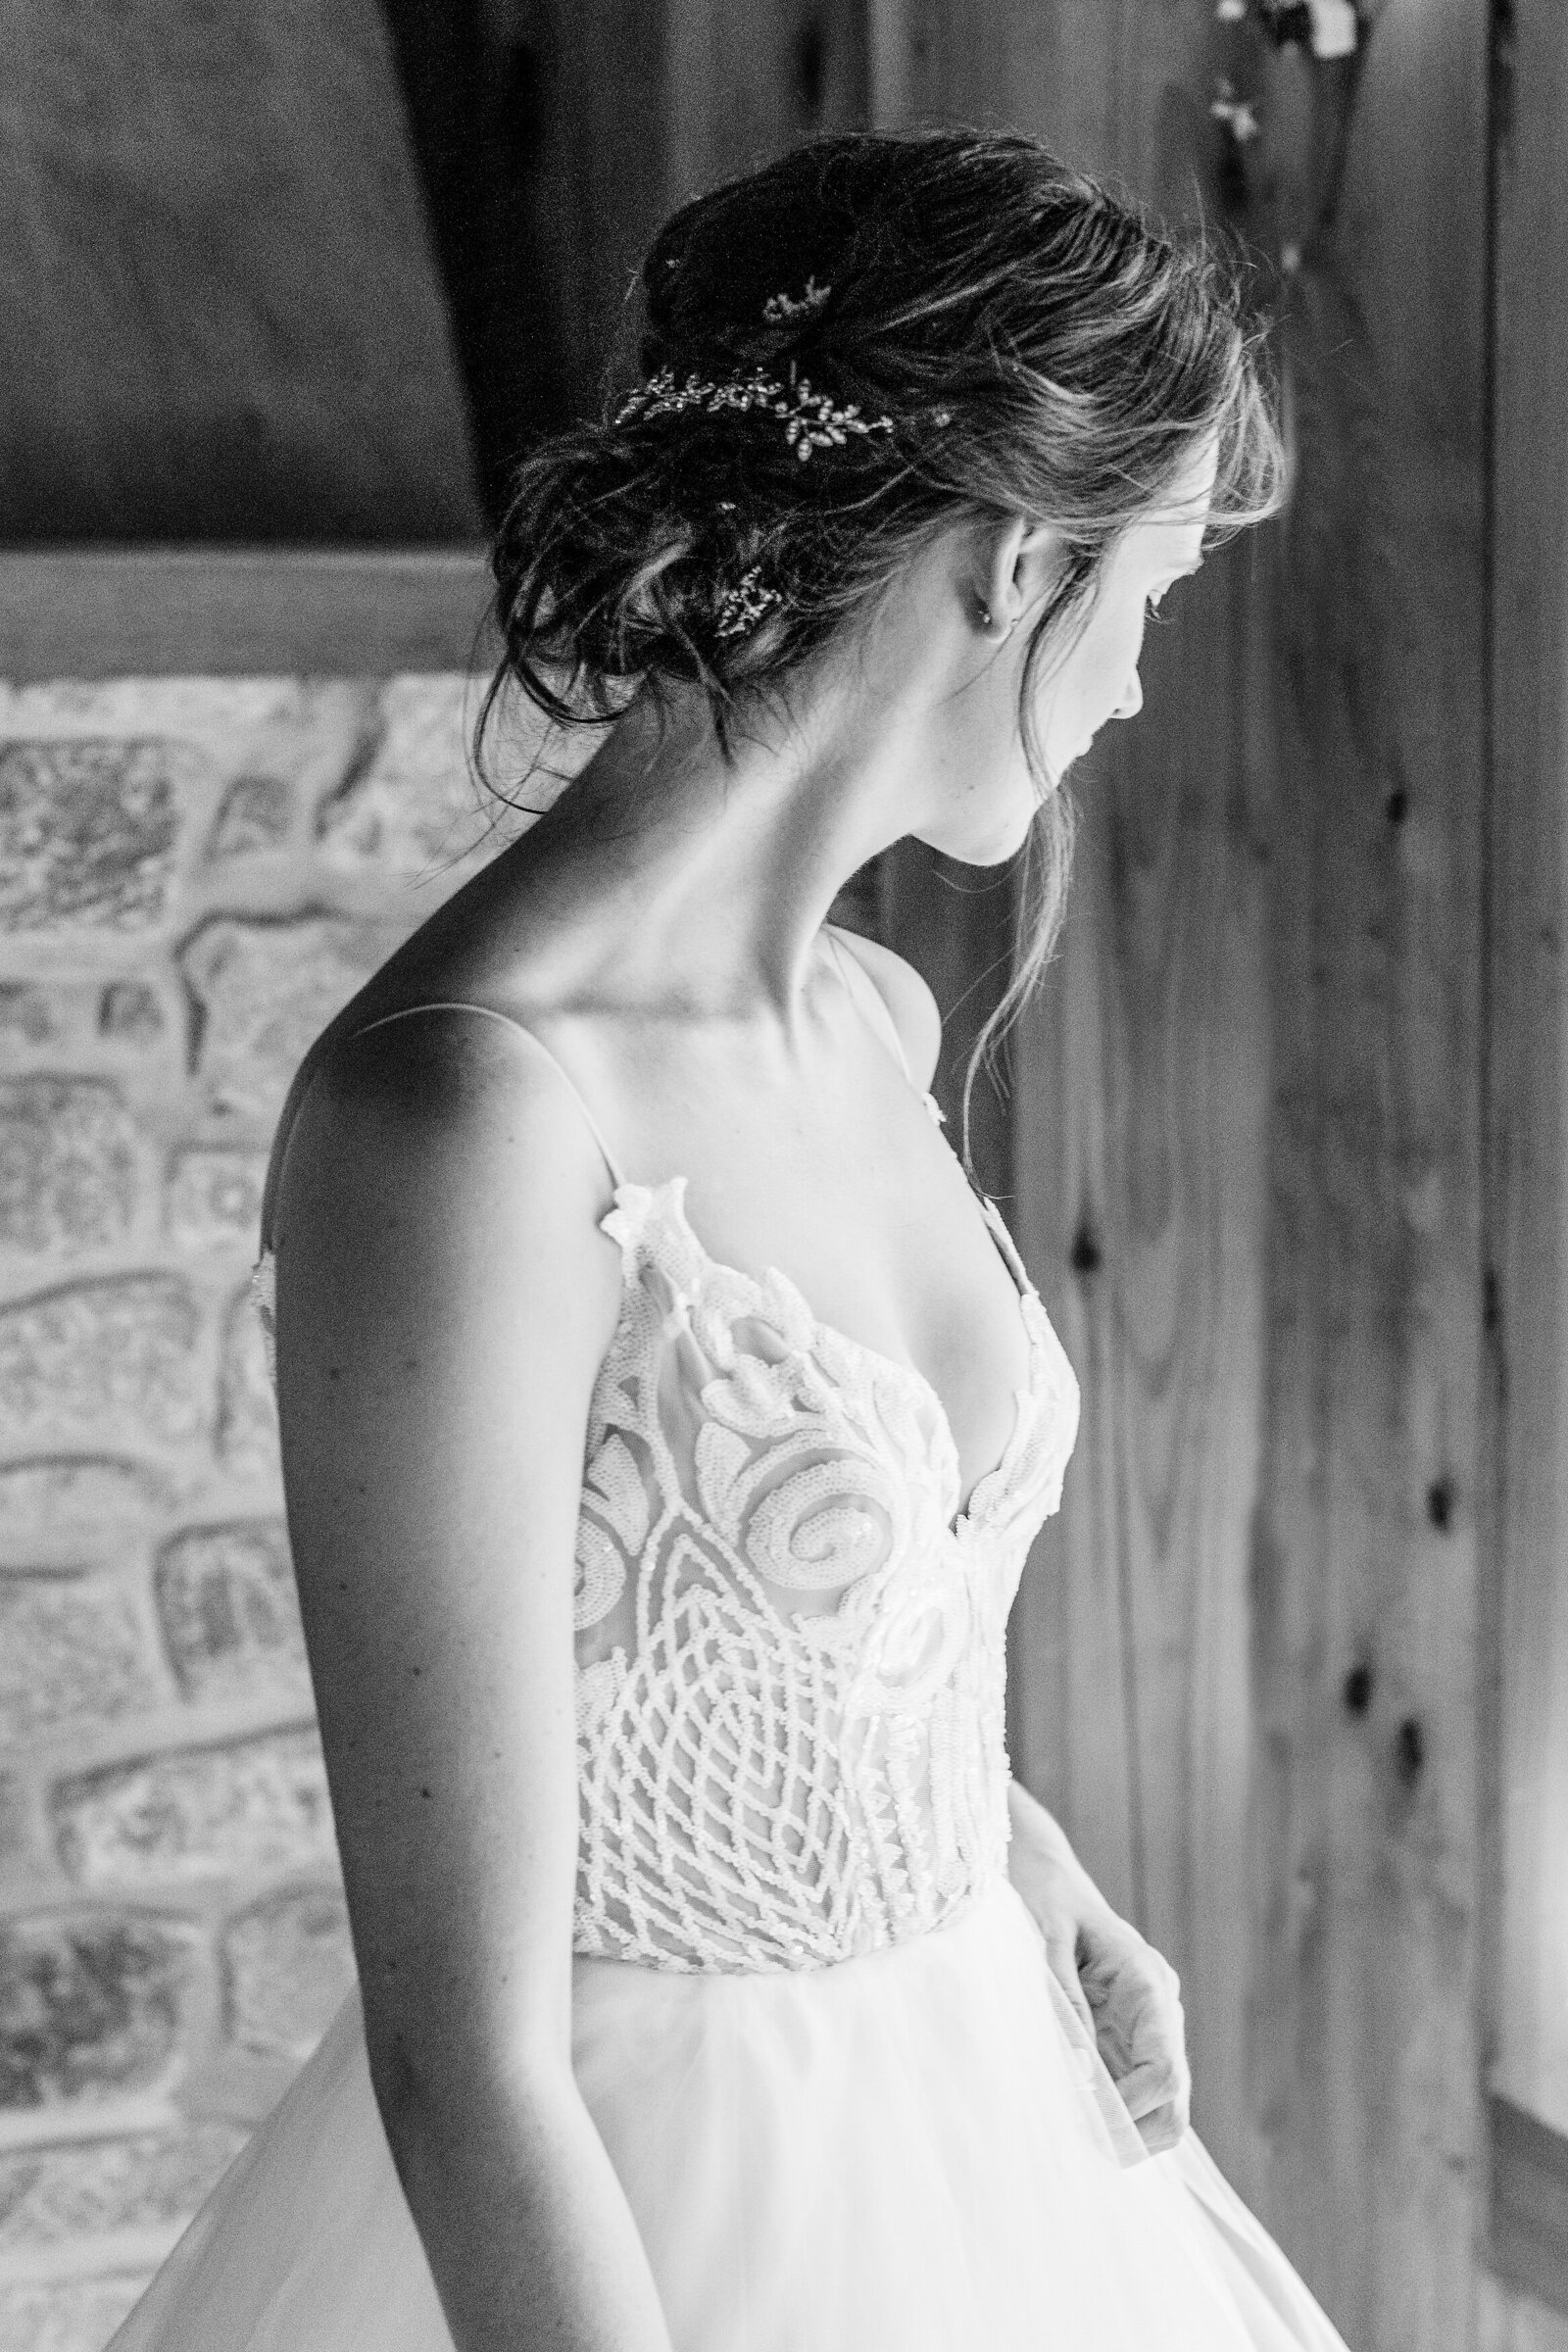 Bride-taking-in-the-moment-when-she-puts-on-her-wedding-dress